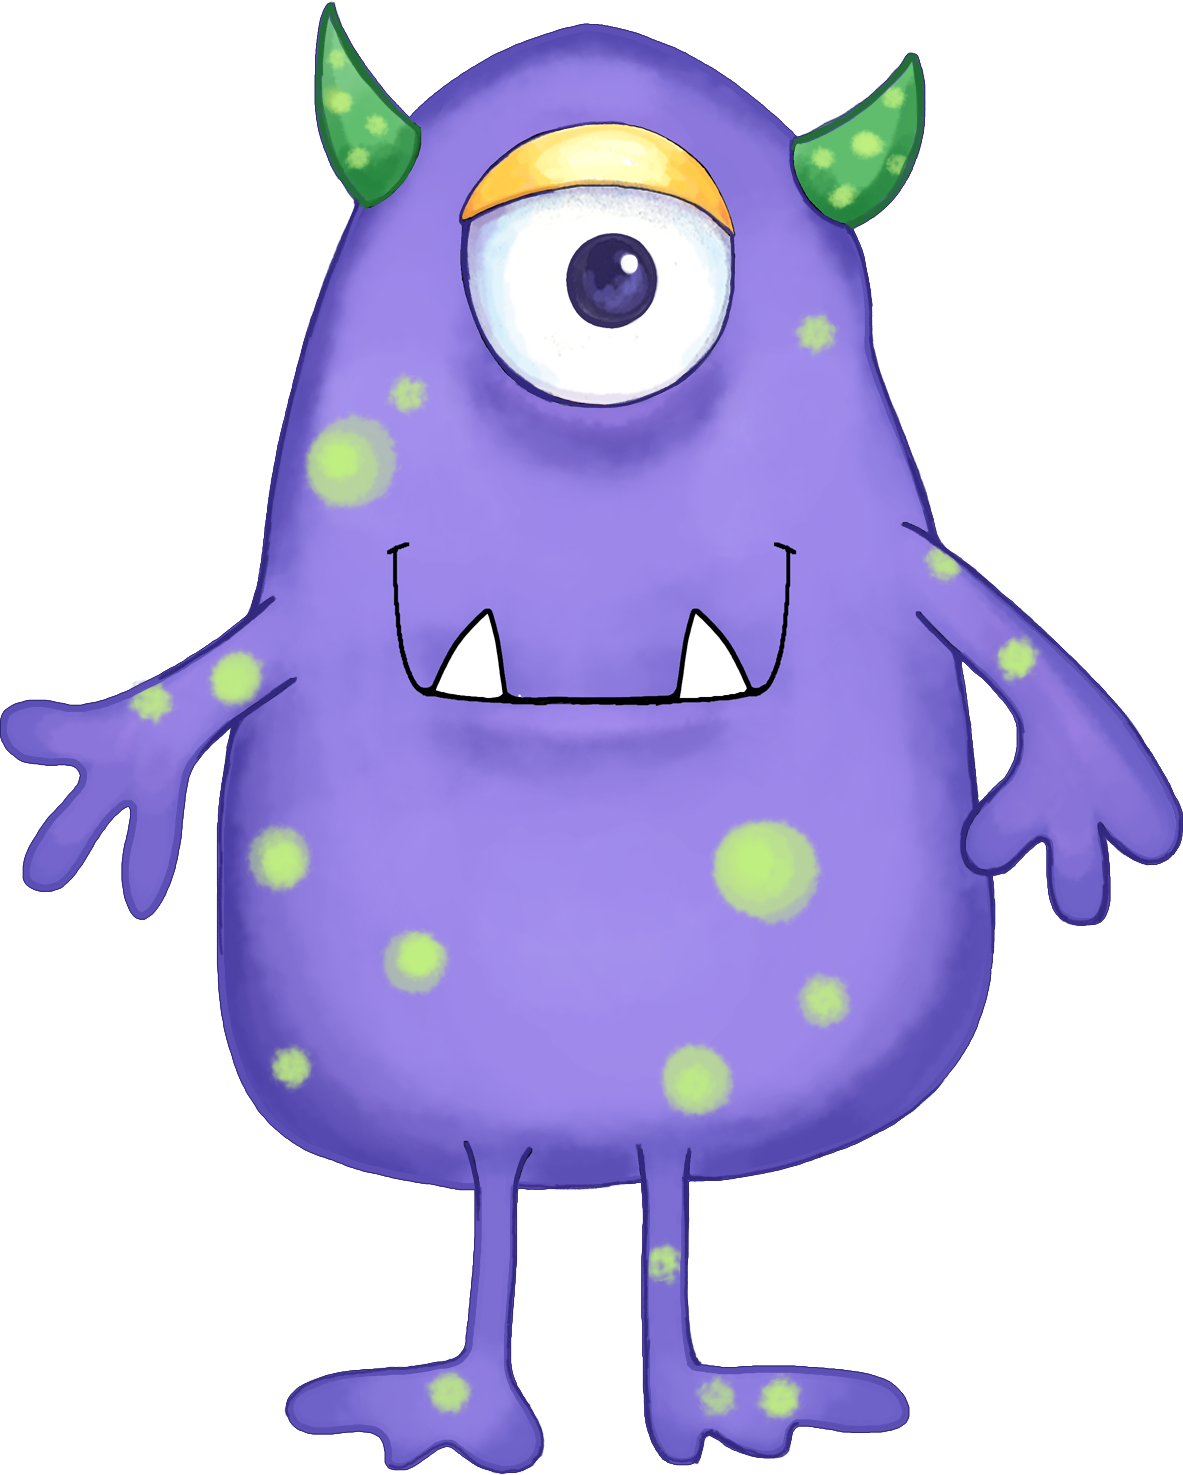 Cute halloween monster clipart free graphic transparent library Your Free Art: Cute Blue, Purple and Green Cartoon Alien Monsters ... graphic transparent library